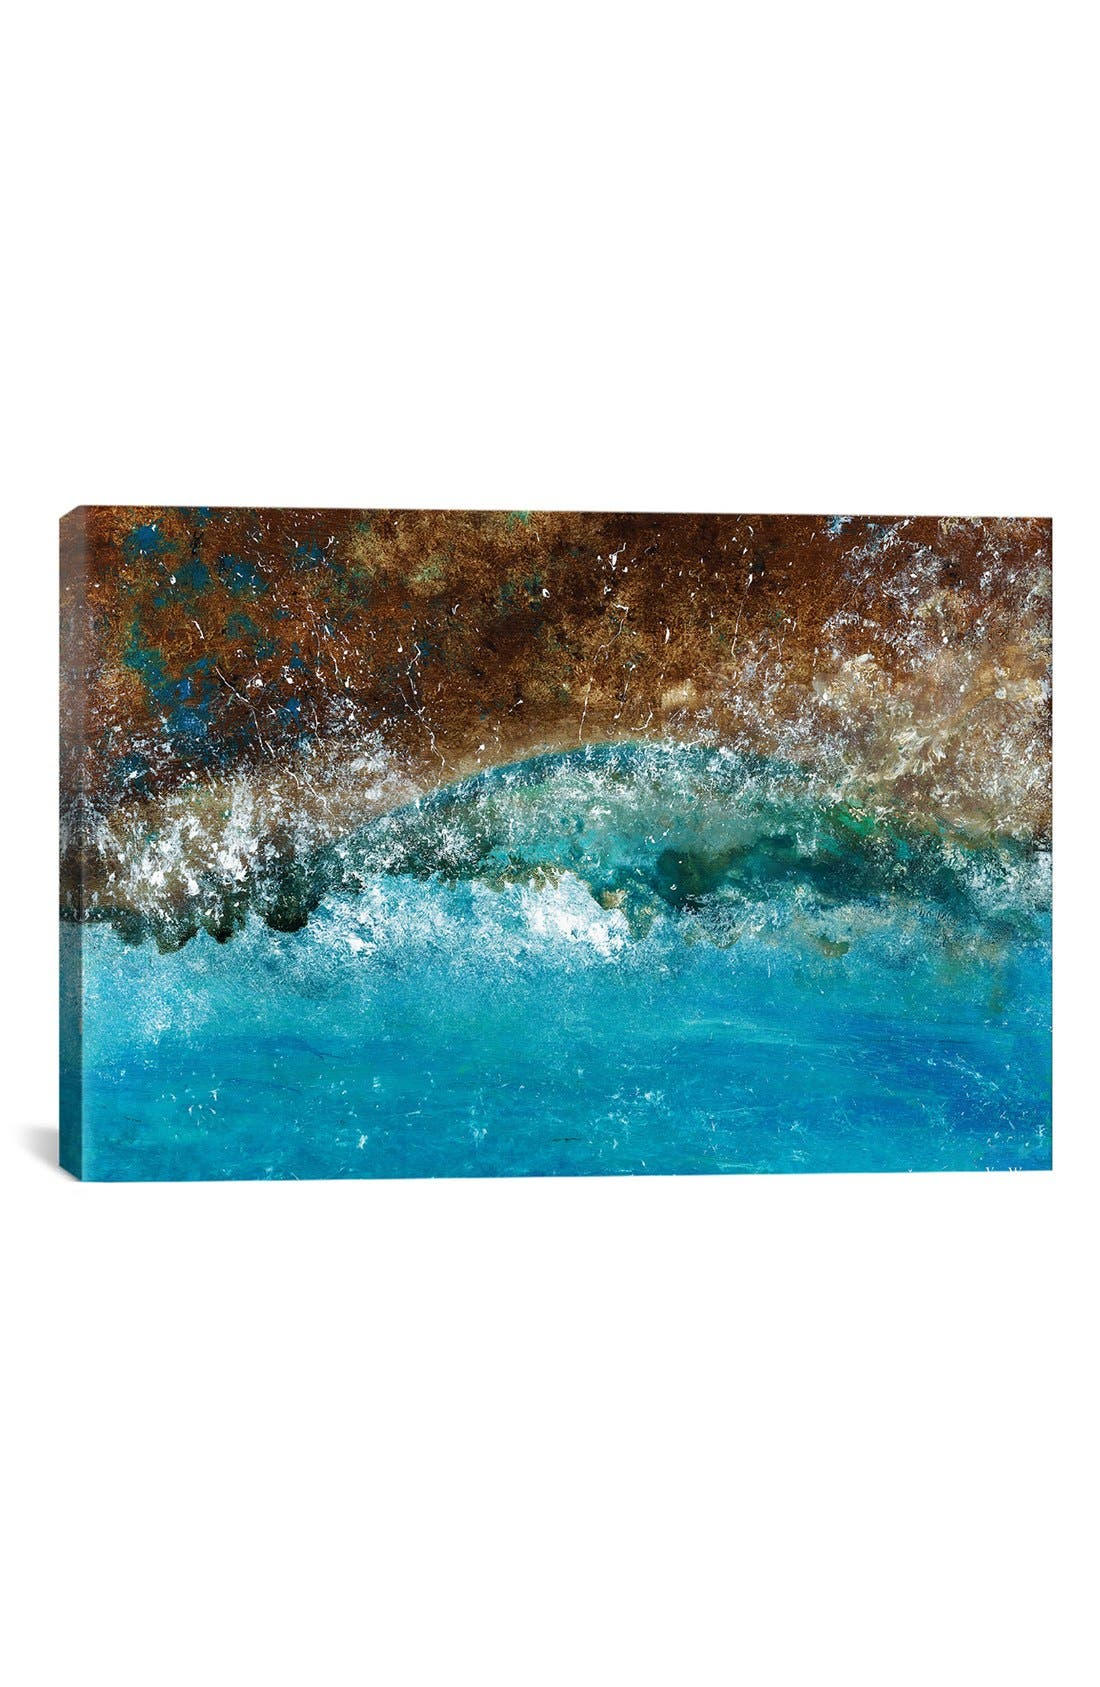 'Distant Shores' Giclée Print Canvas Art,                             Main thumbnail 1, color,                             Brown